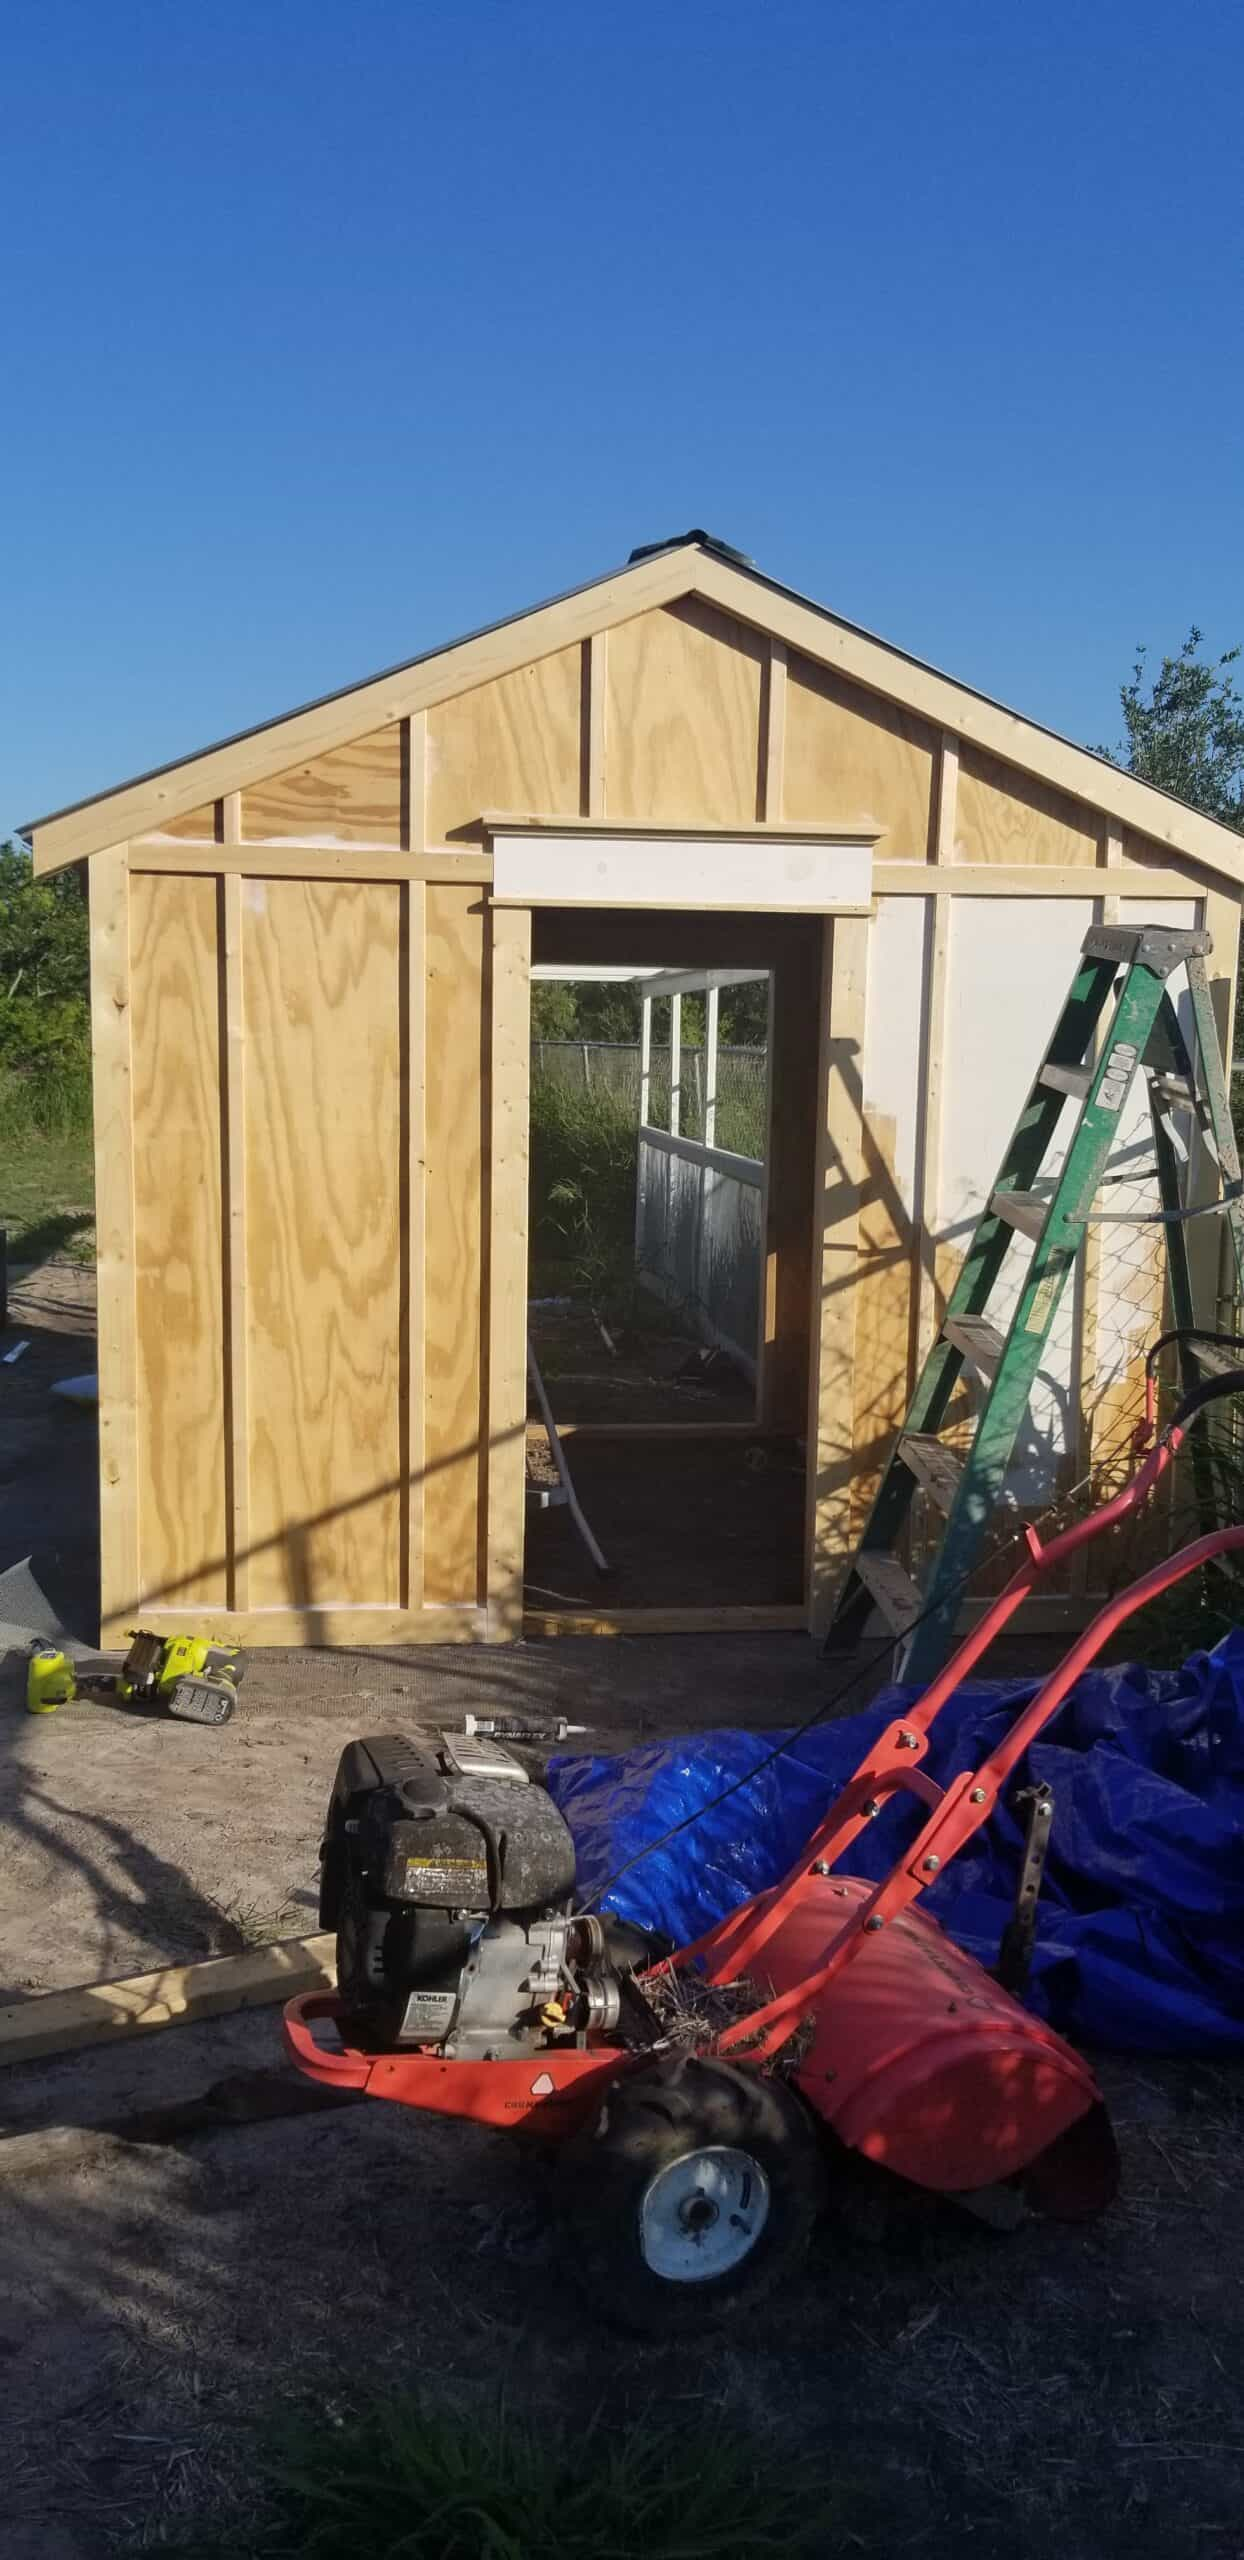 DIY Plans for Large Chicken Coop